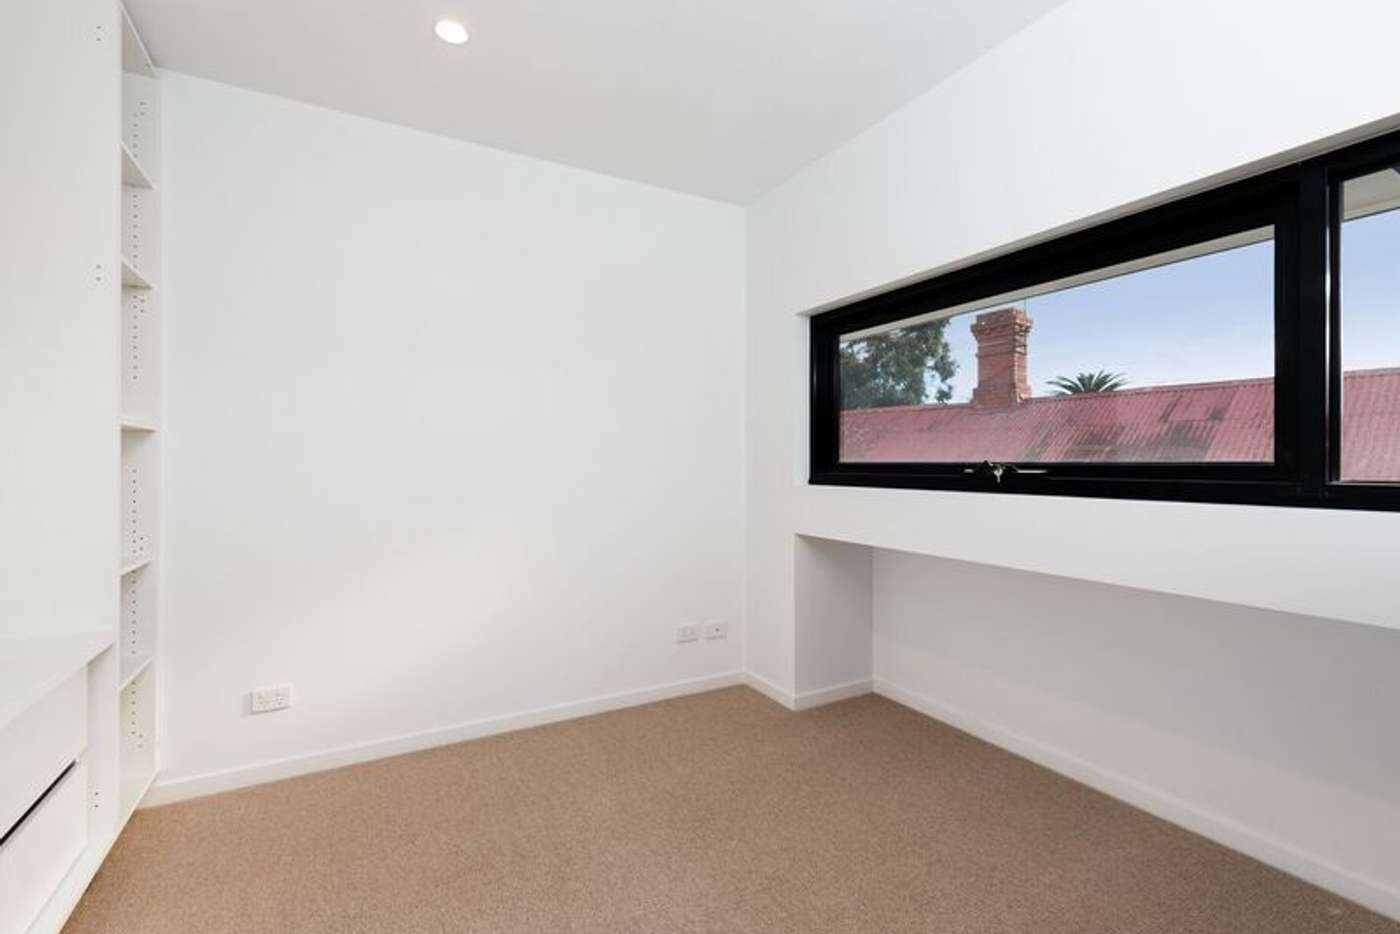 Seventh view of Homely apartment listing, 205/28-30 Station Street, Fairfield VIC 3078